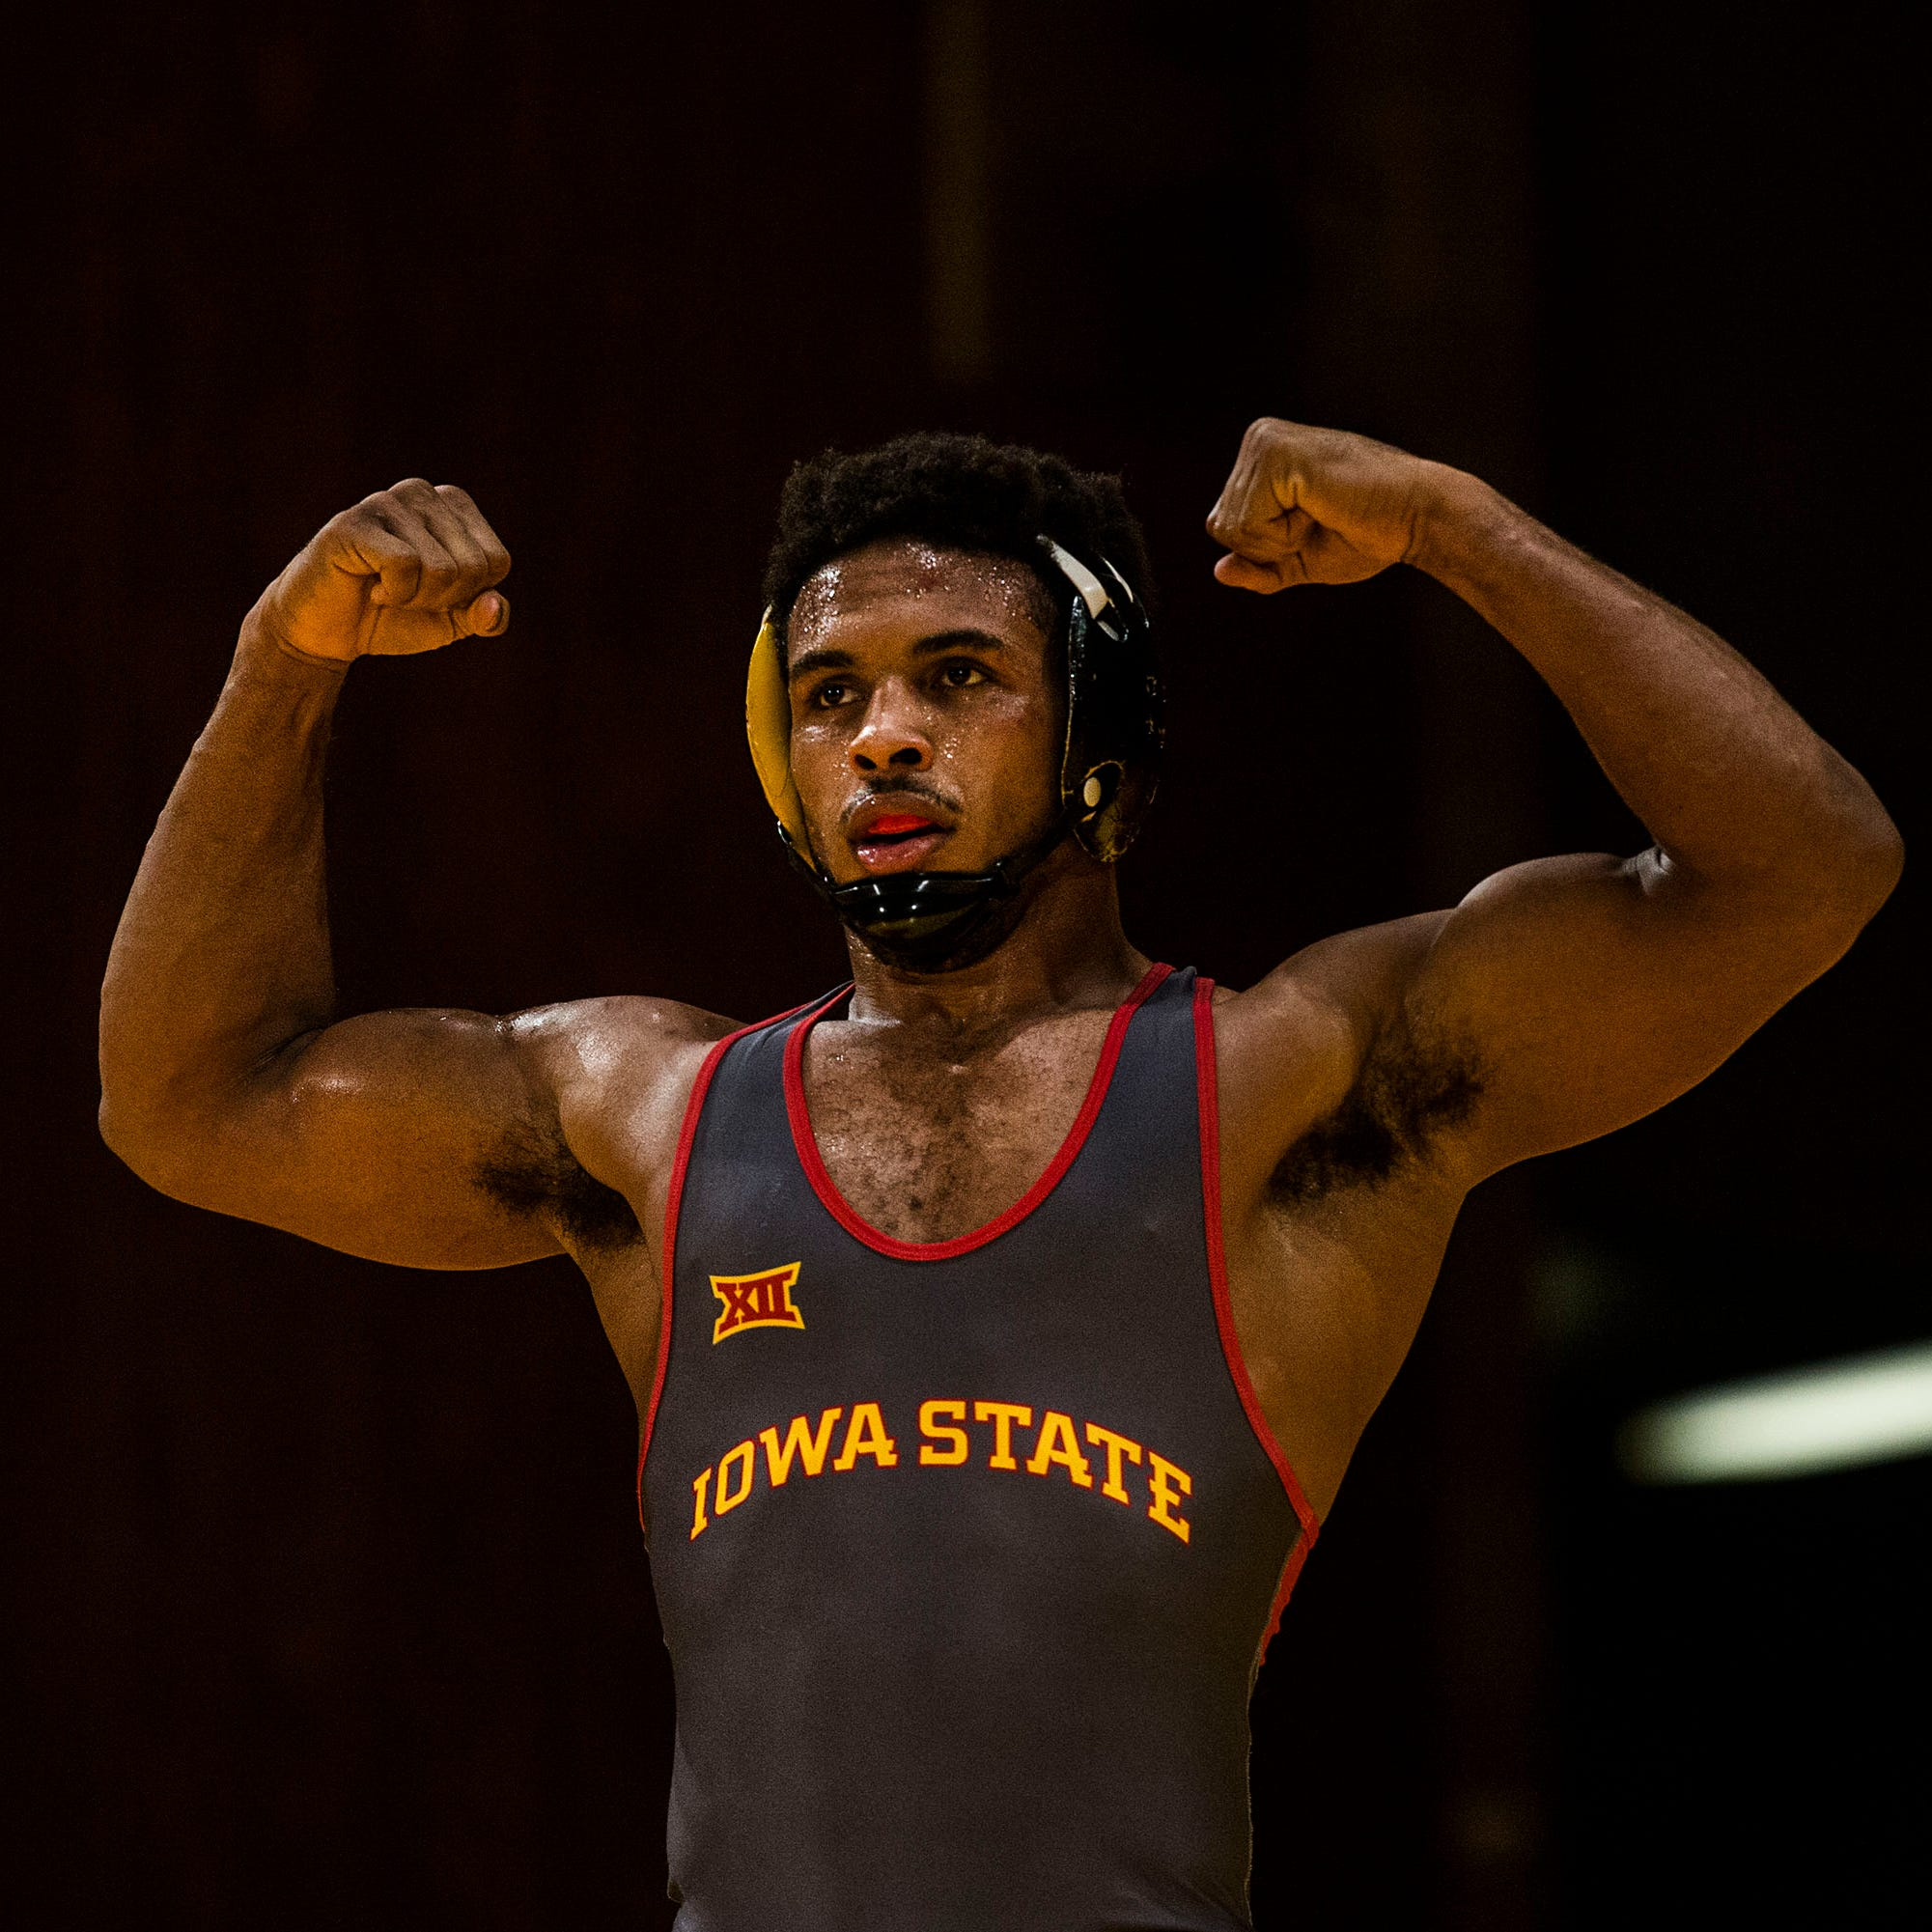 Cyclone wrestlers dominate Ohio in Hilton opener